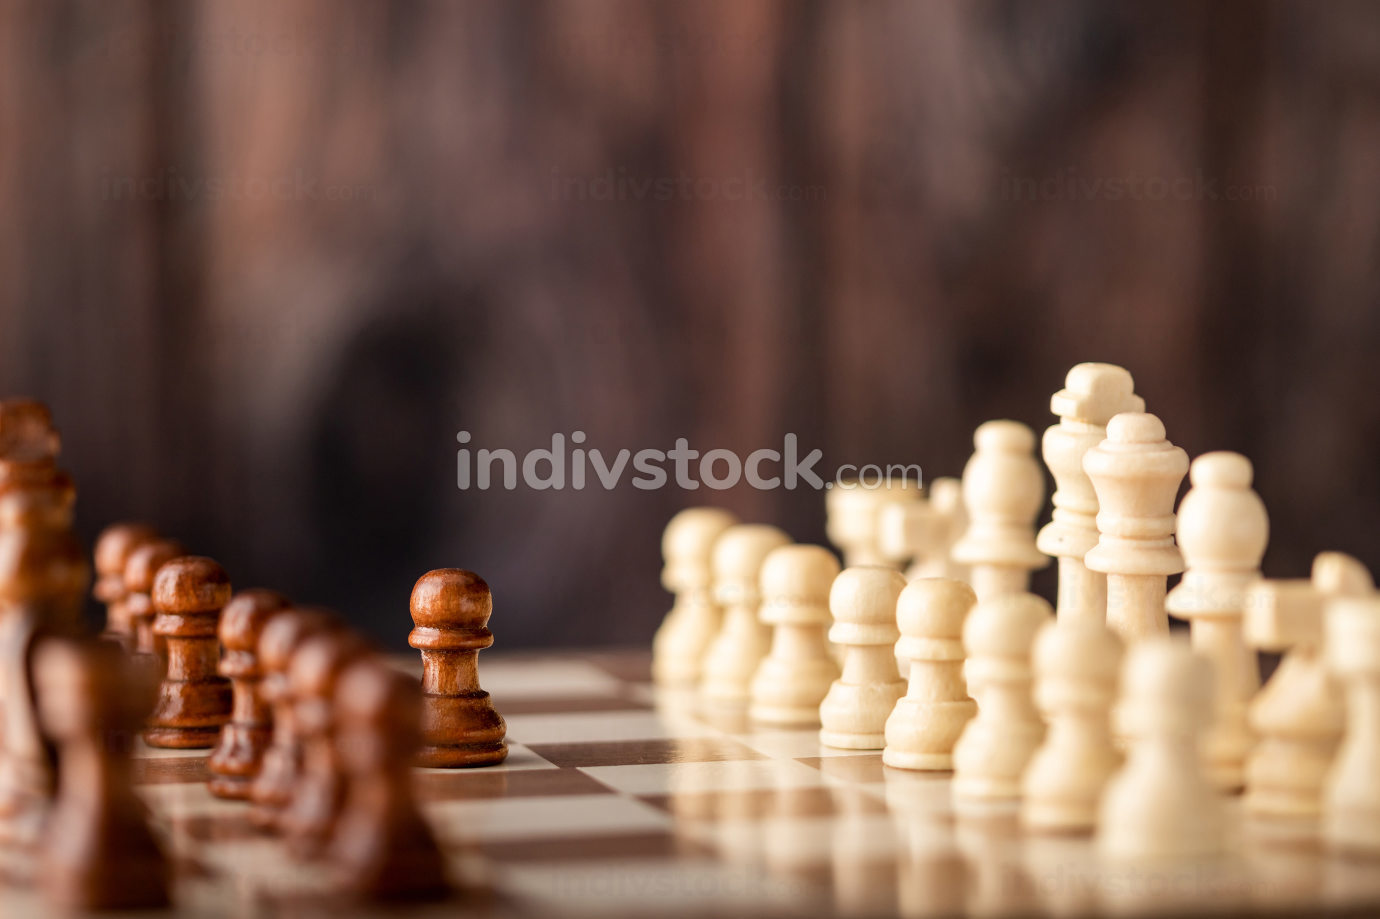 wooden chess endways on the board